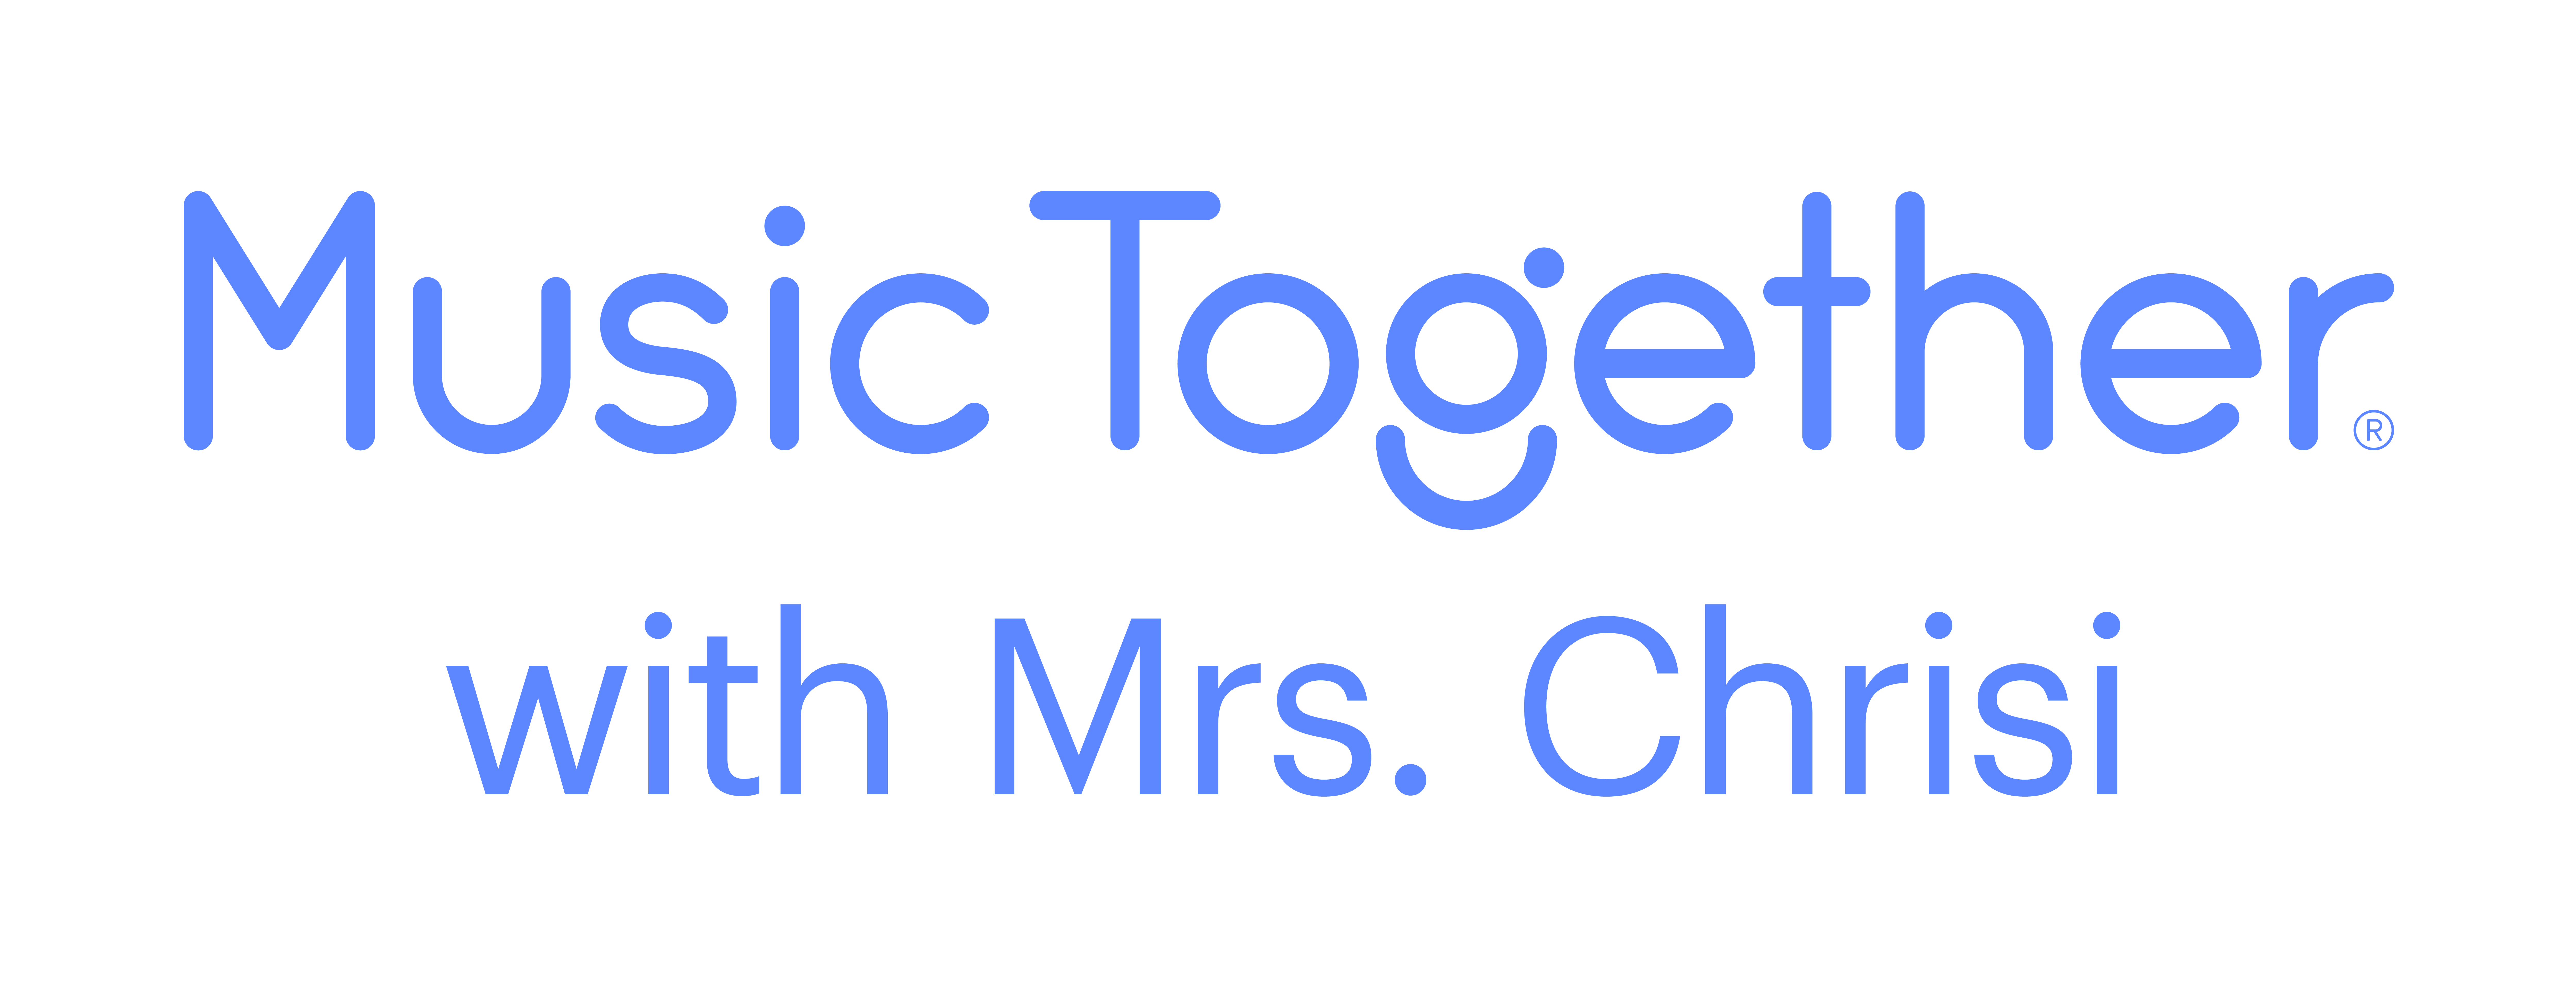 Music Together with Mrs. Chrisi